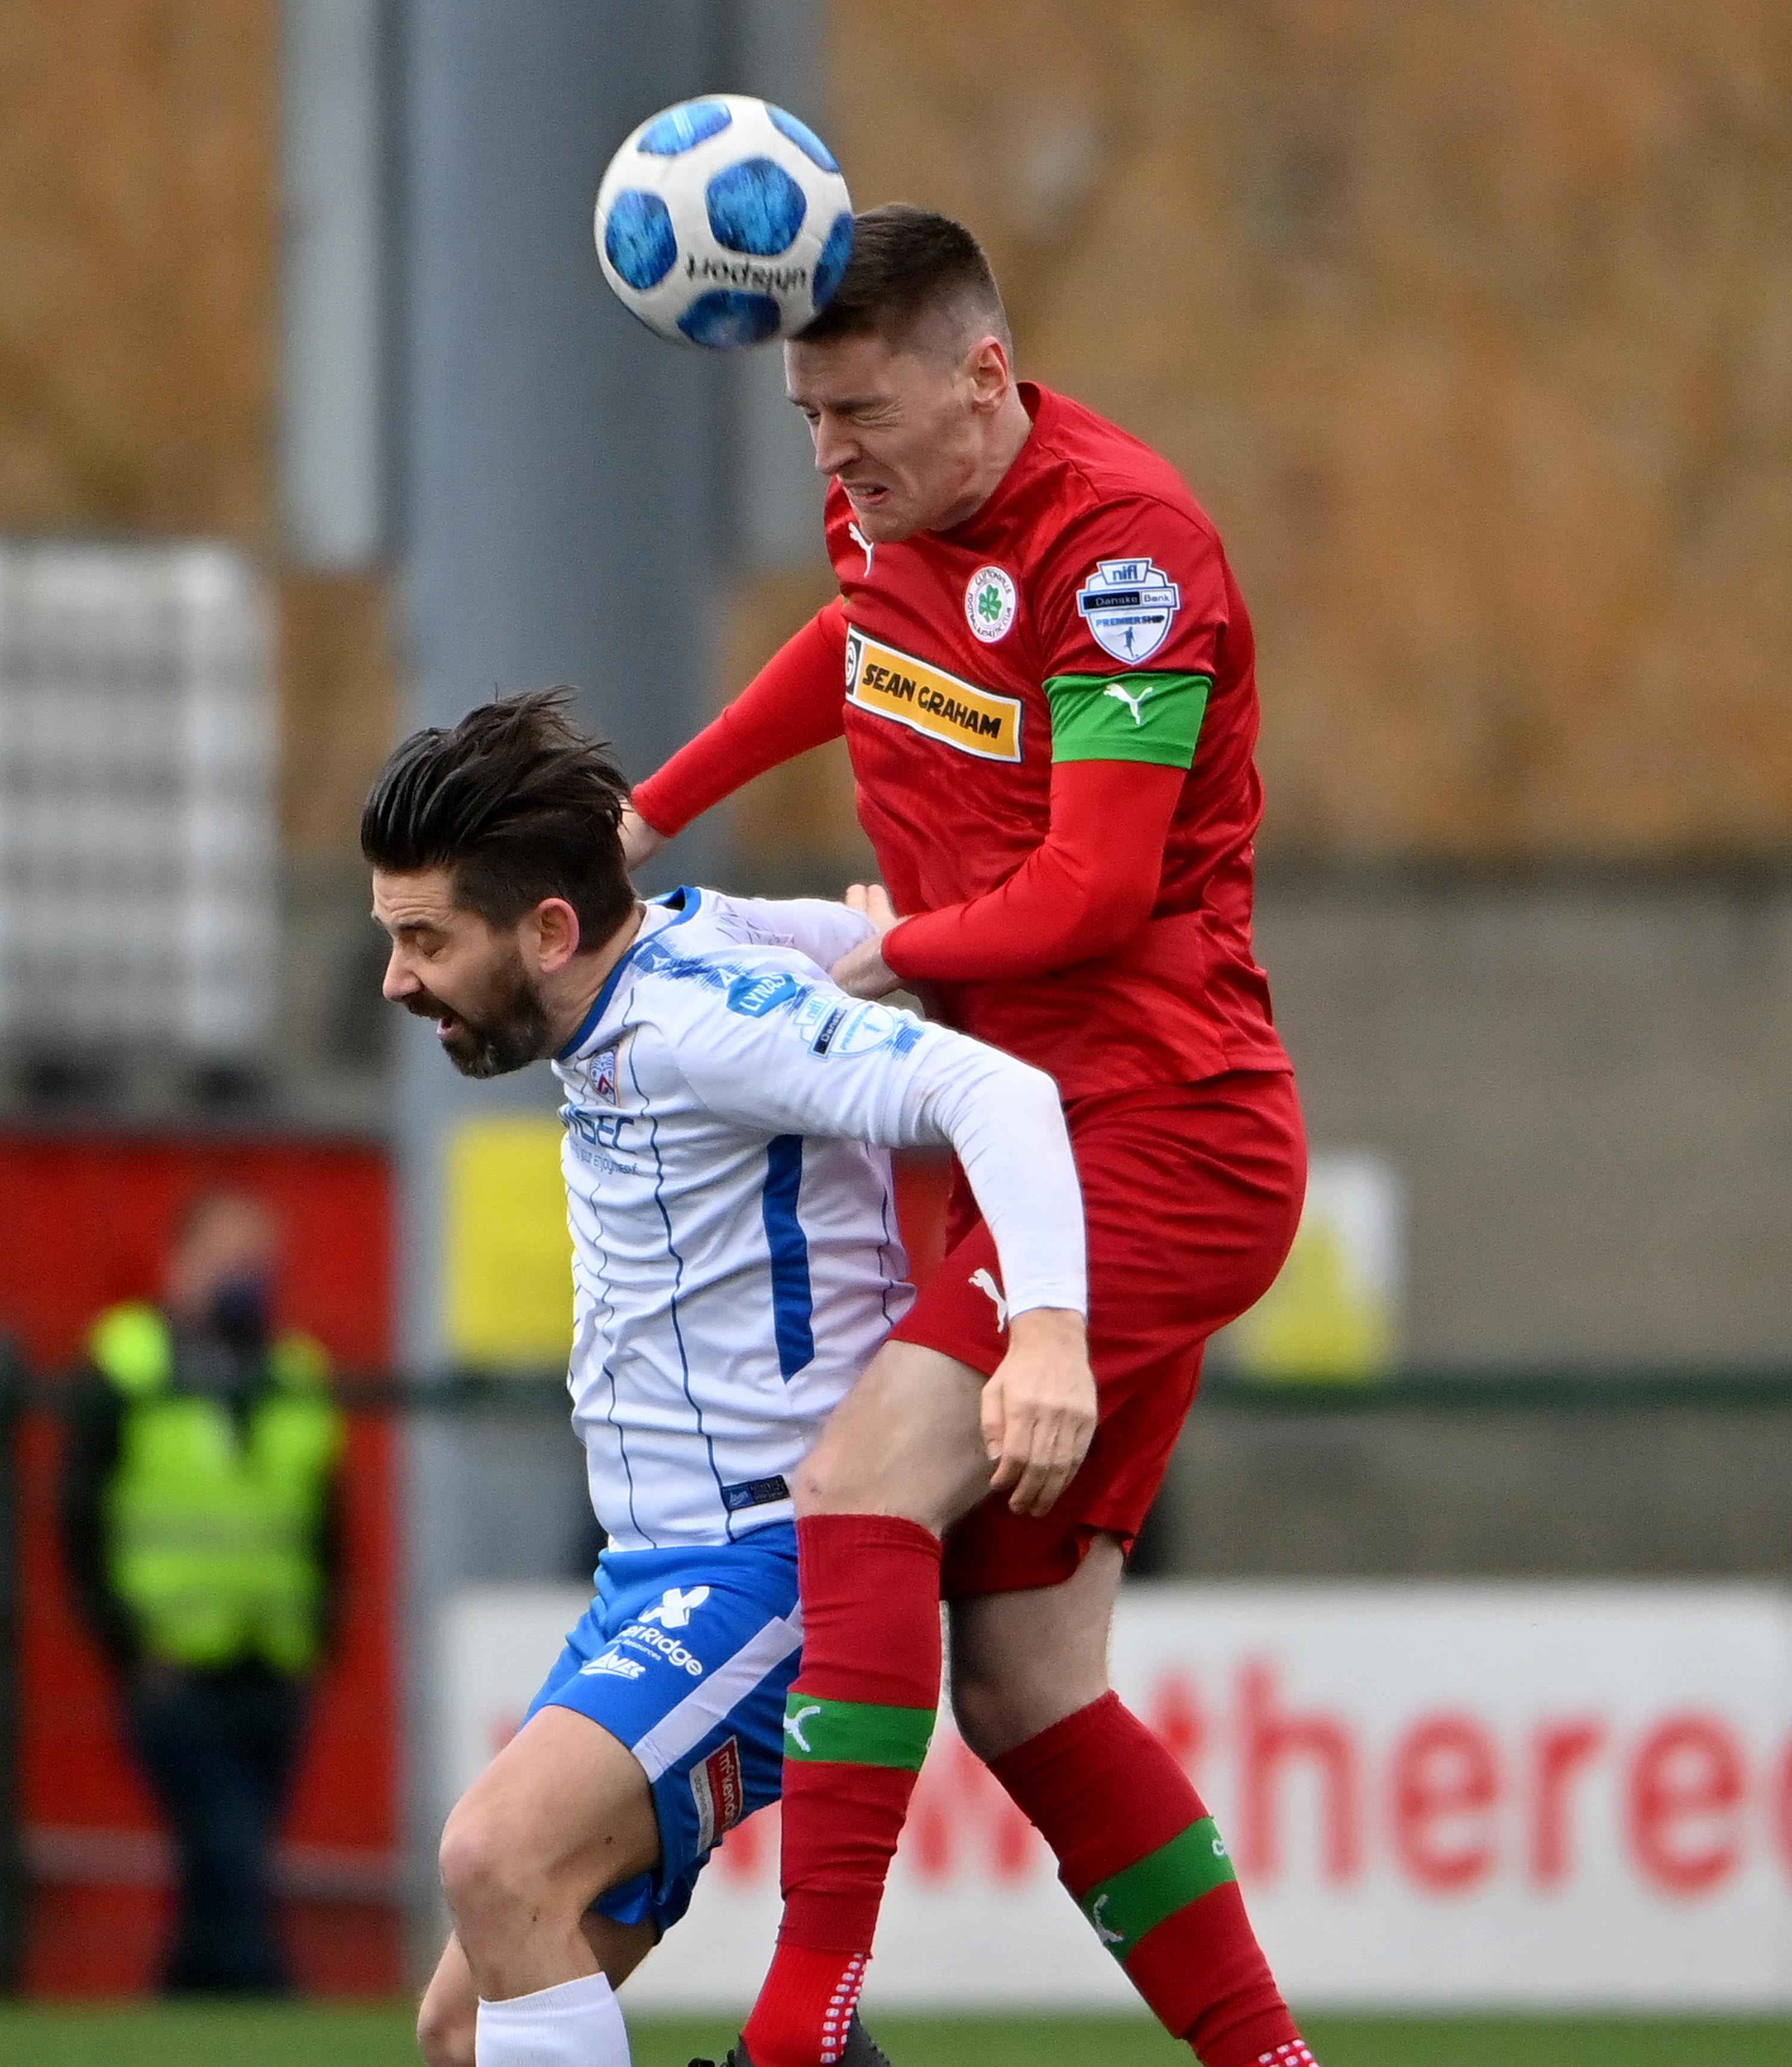 Ryan O\'Reilly headed his first goal since signing for Cliftonville on Tuesday